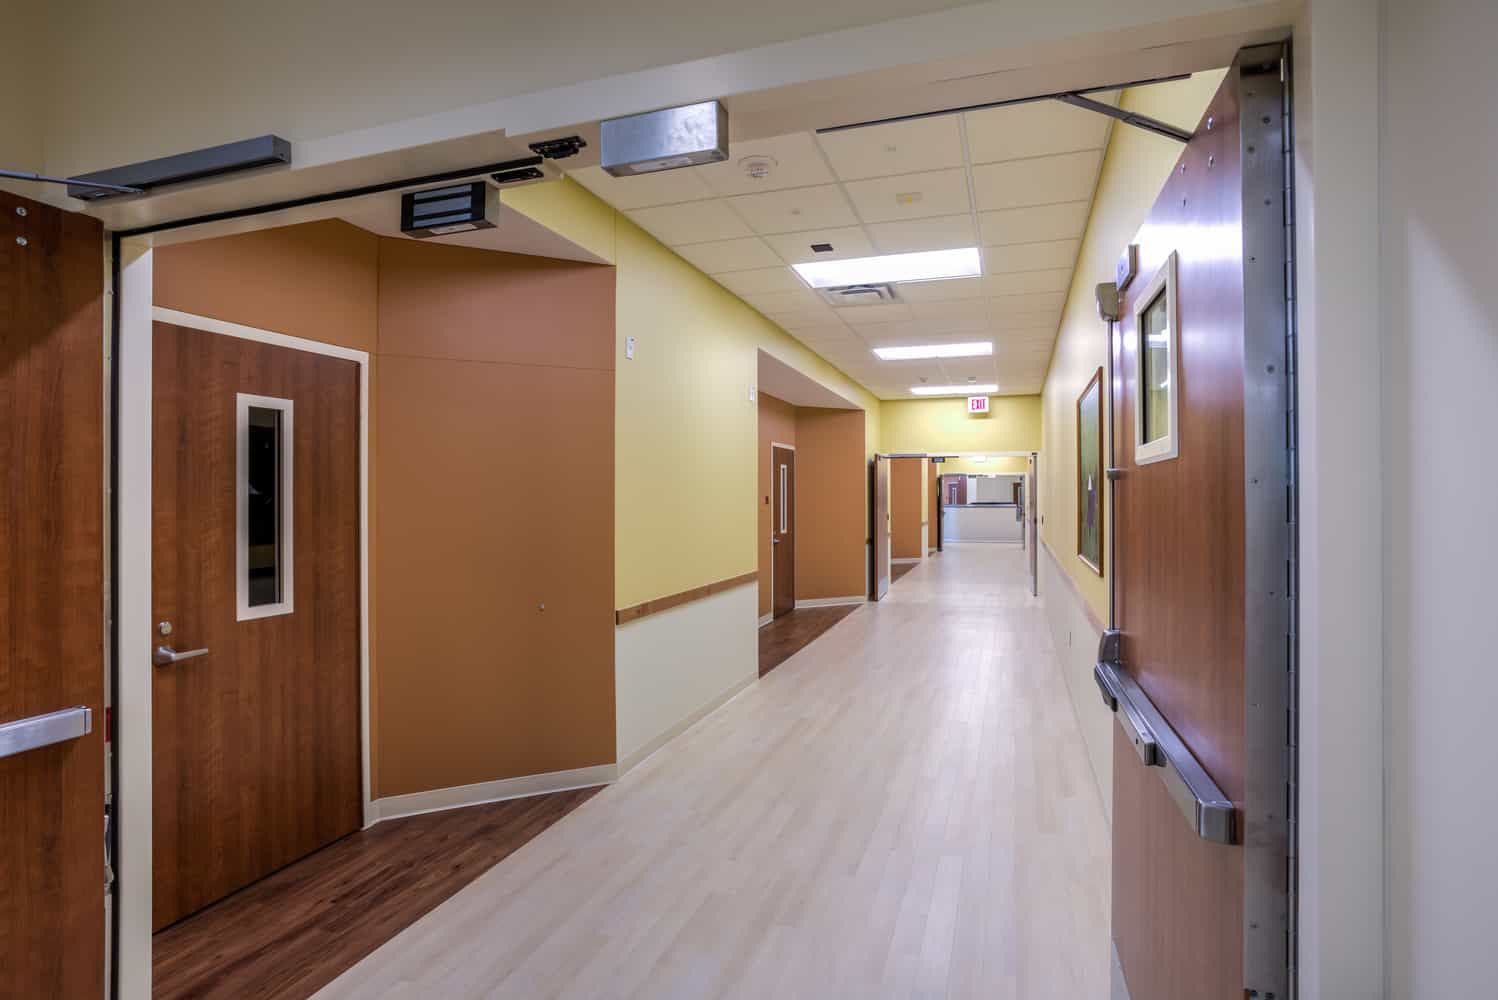 Pine Rest Christian Mental Health Services Van Andel Center Expansion